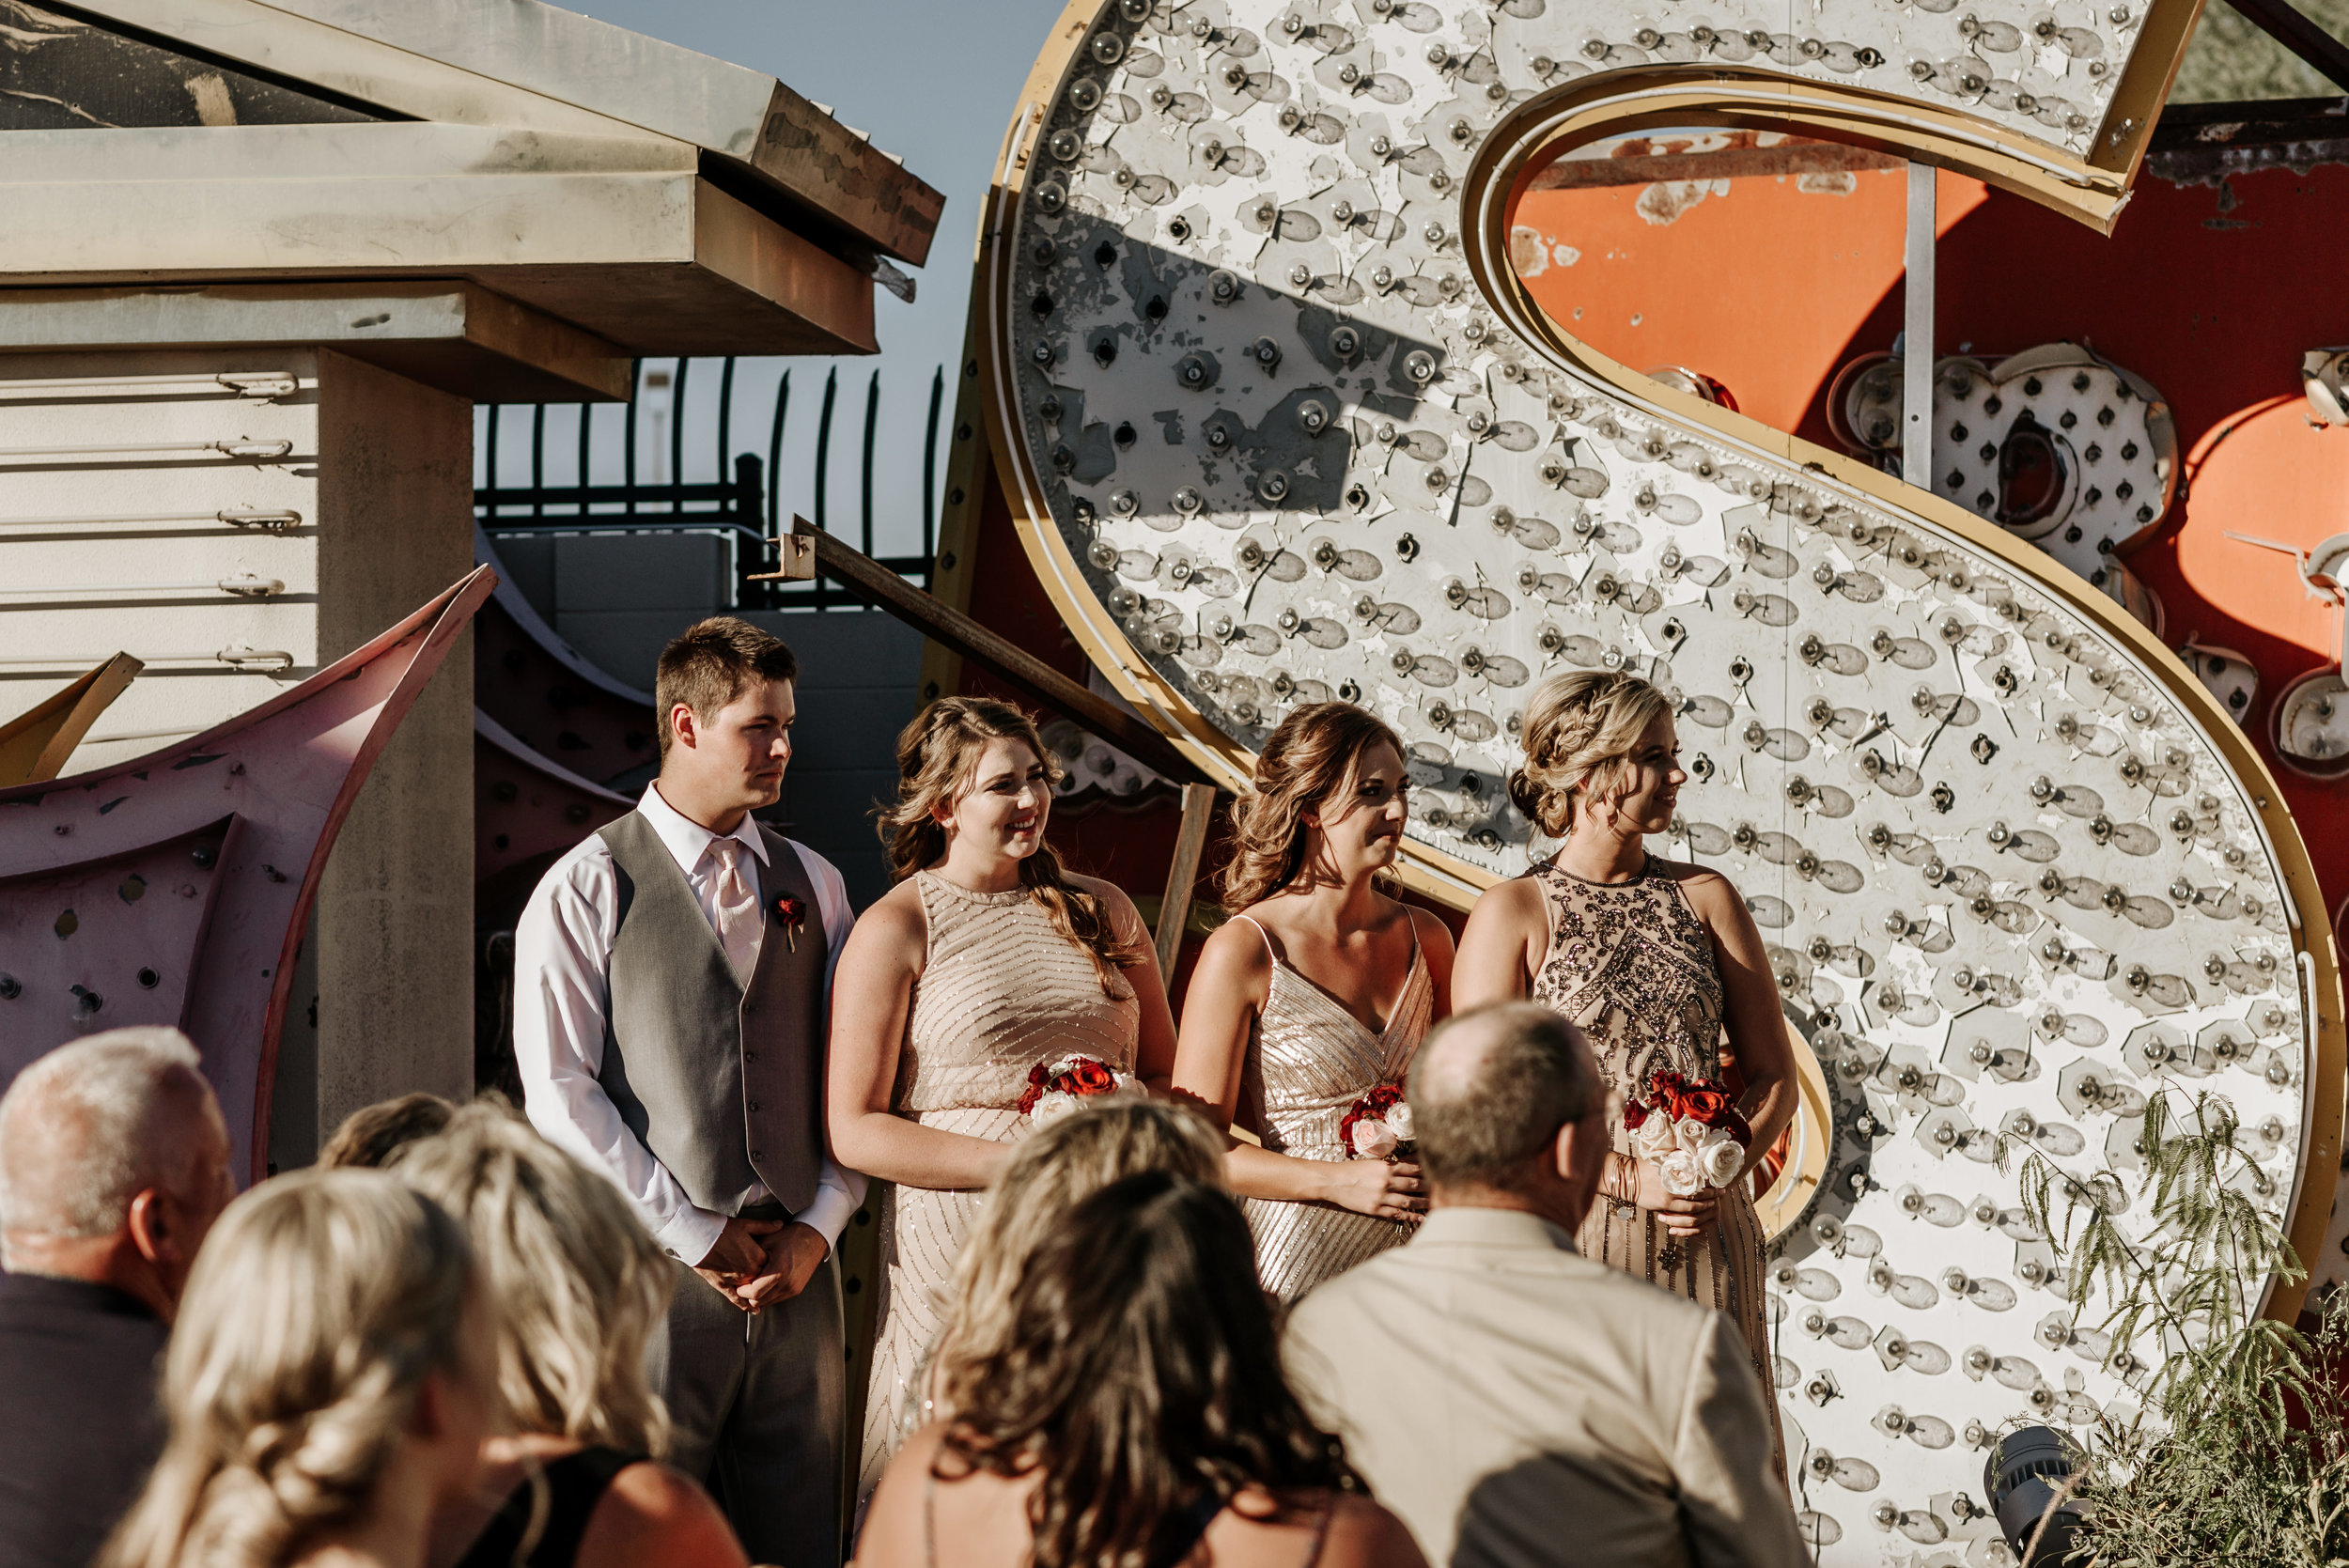 Neon-Museum-Wedding-Las-Vegas-Nevada-Golden-Nugget-Photography-by-V-Ally-and-Dan-6579.jpg